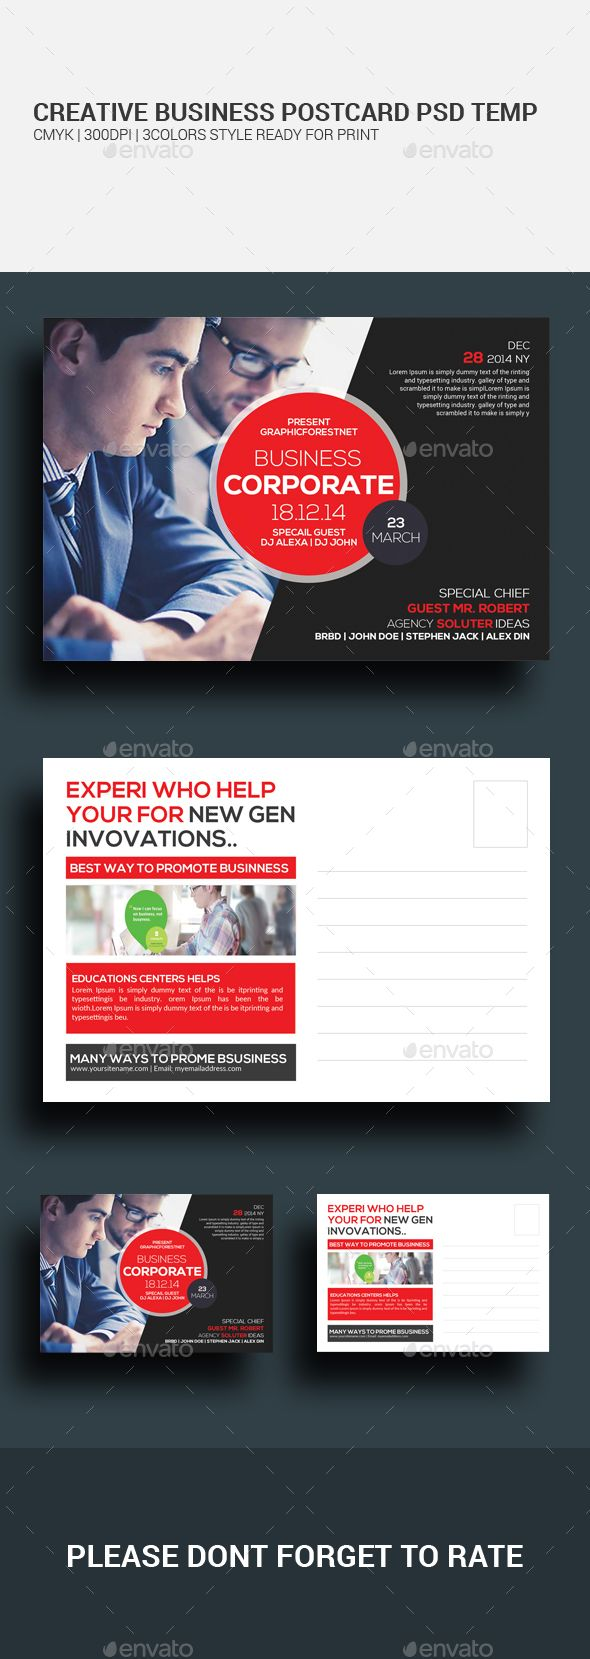 Marketing Corporate Business Postcards